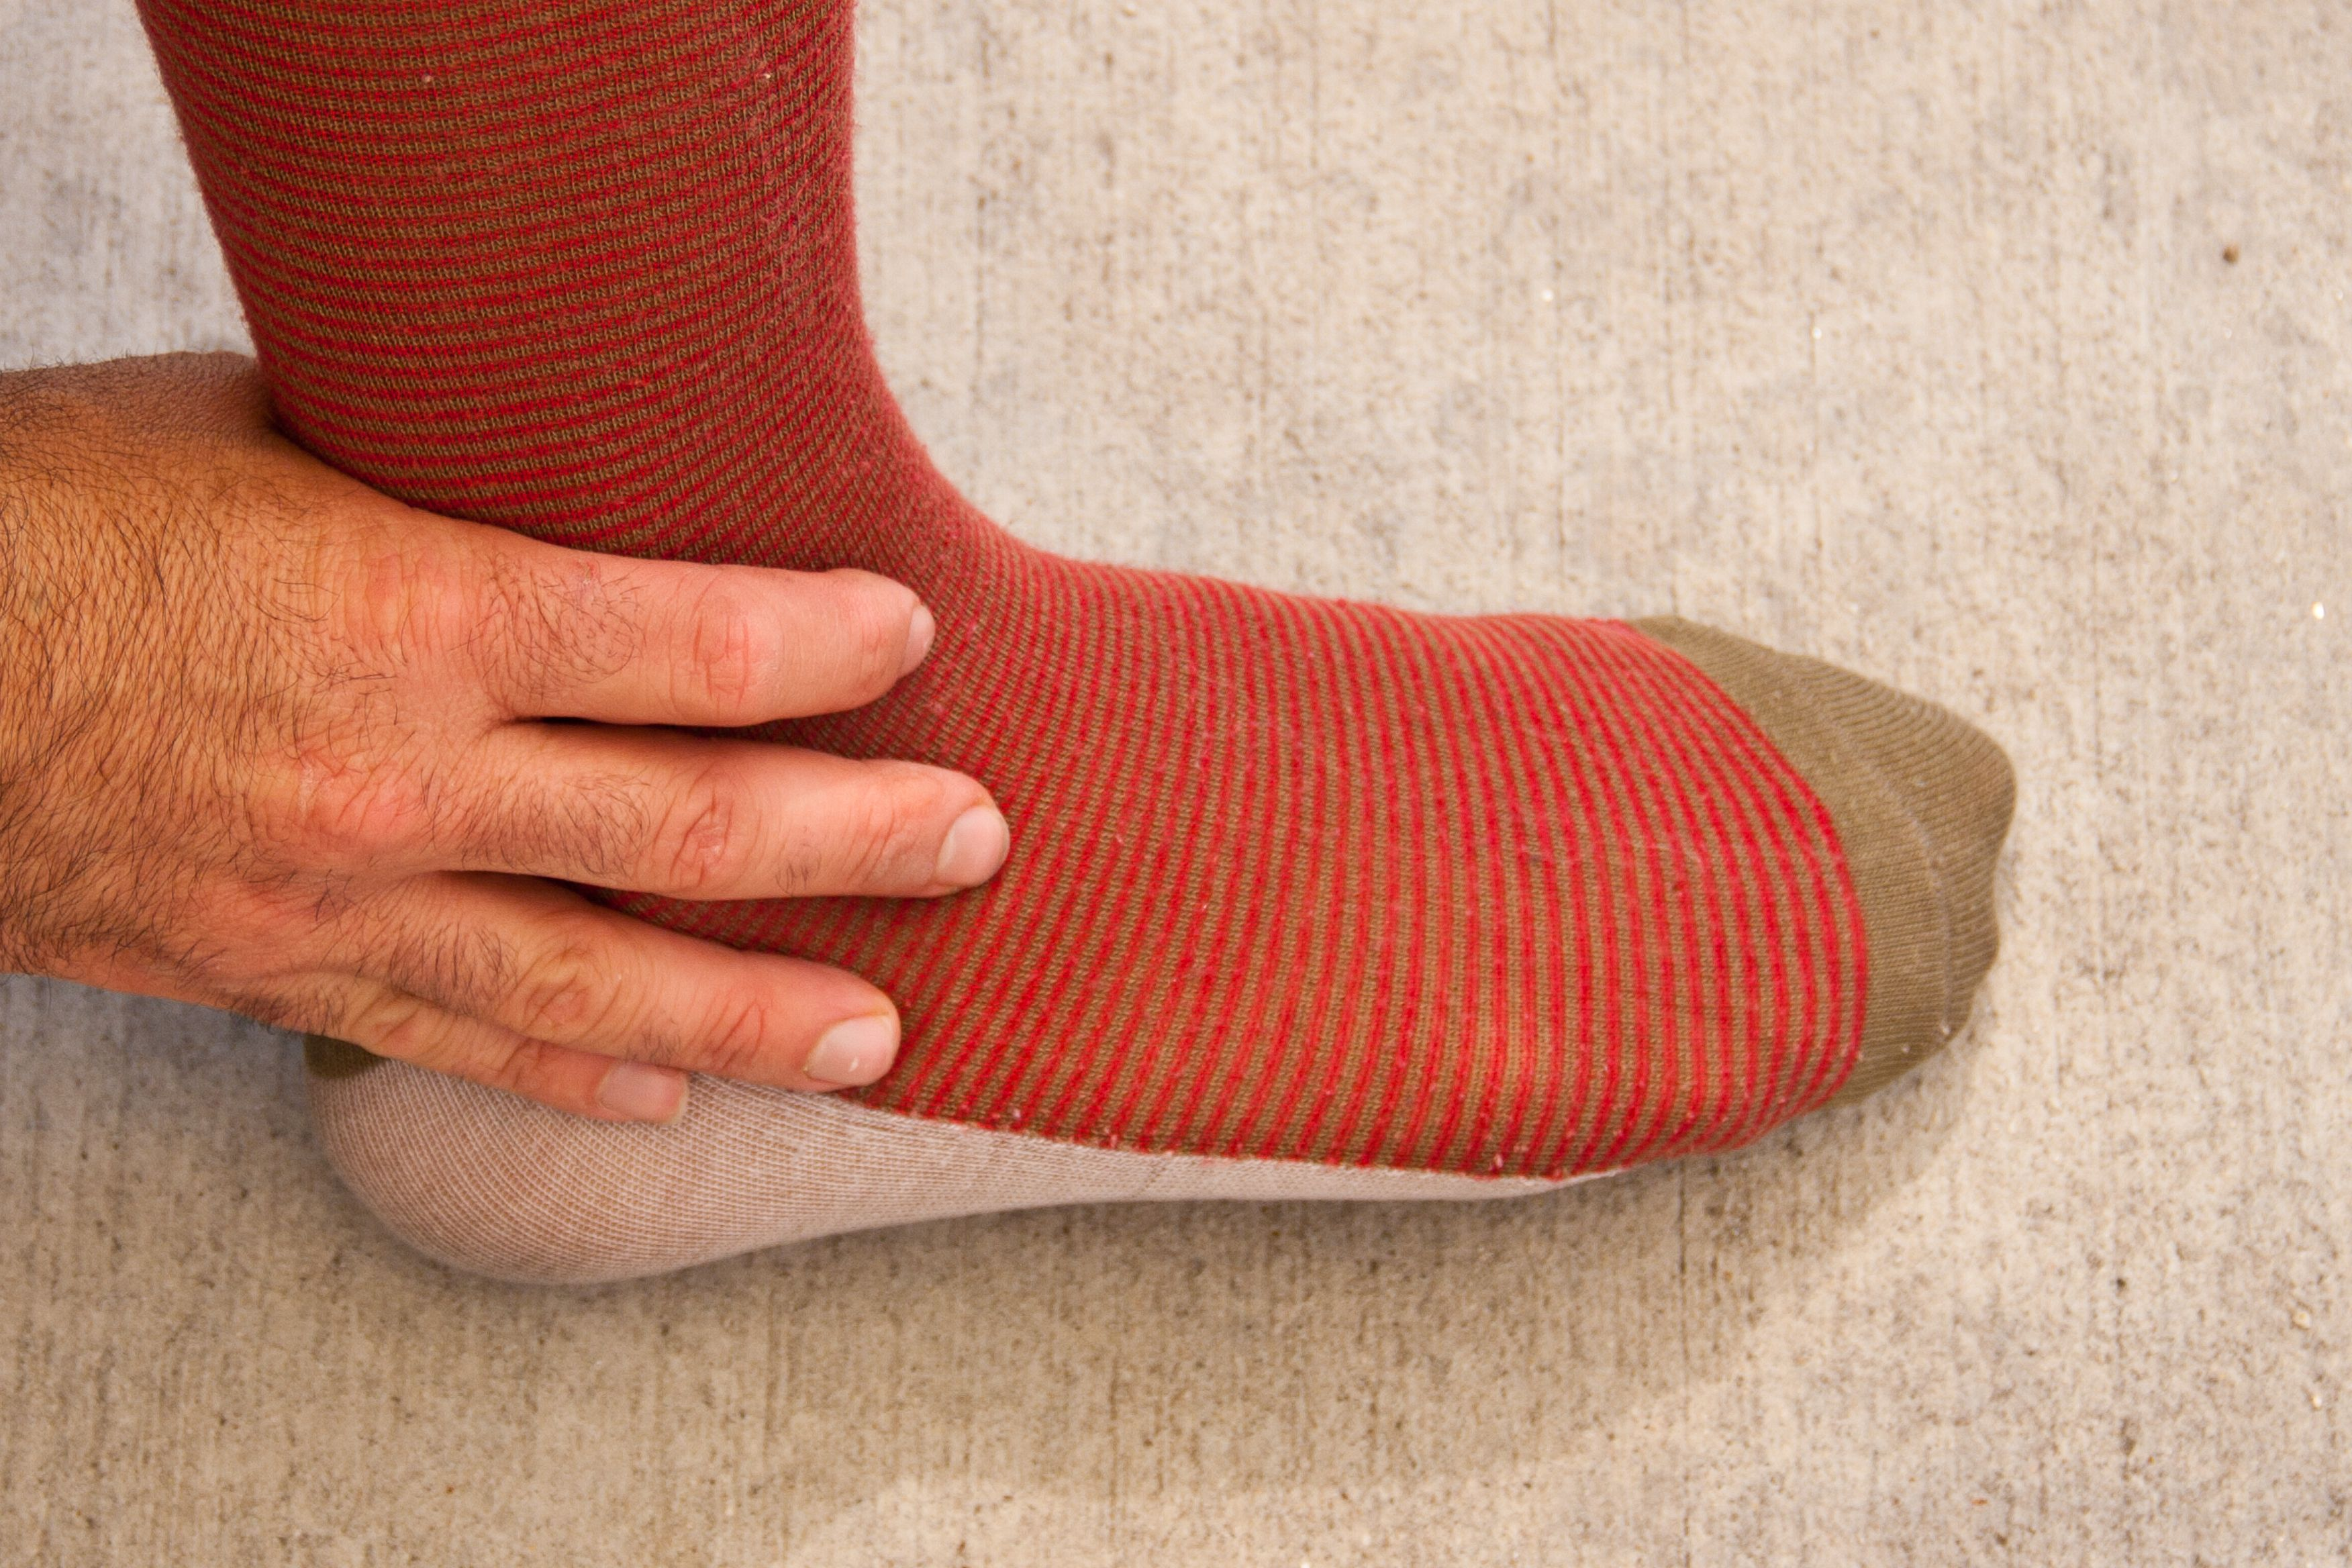 Home remedies to repair a torn ligament ligament tear